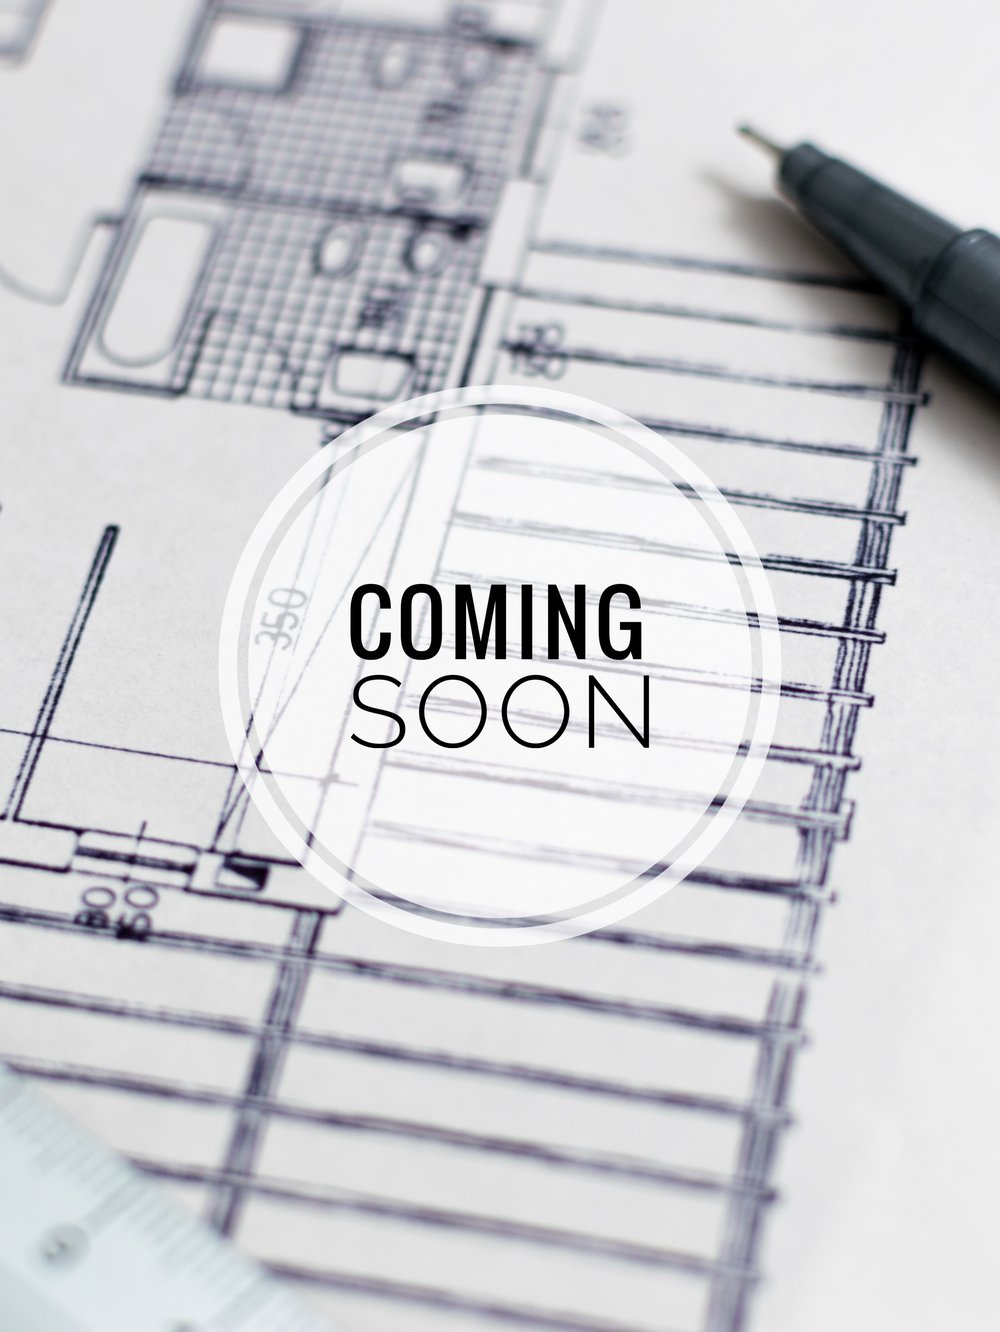 COMING SOON Architect: Ike Kligerman Barkley Architects